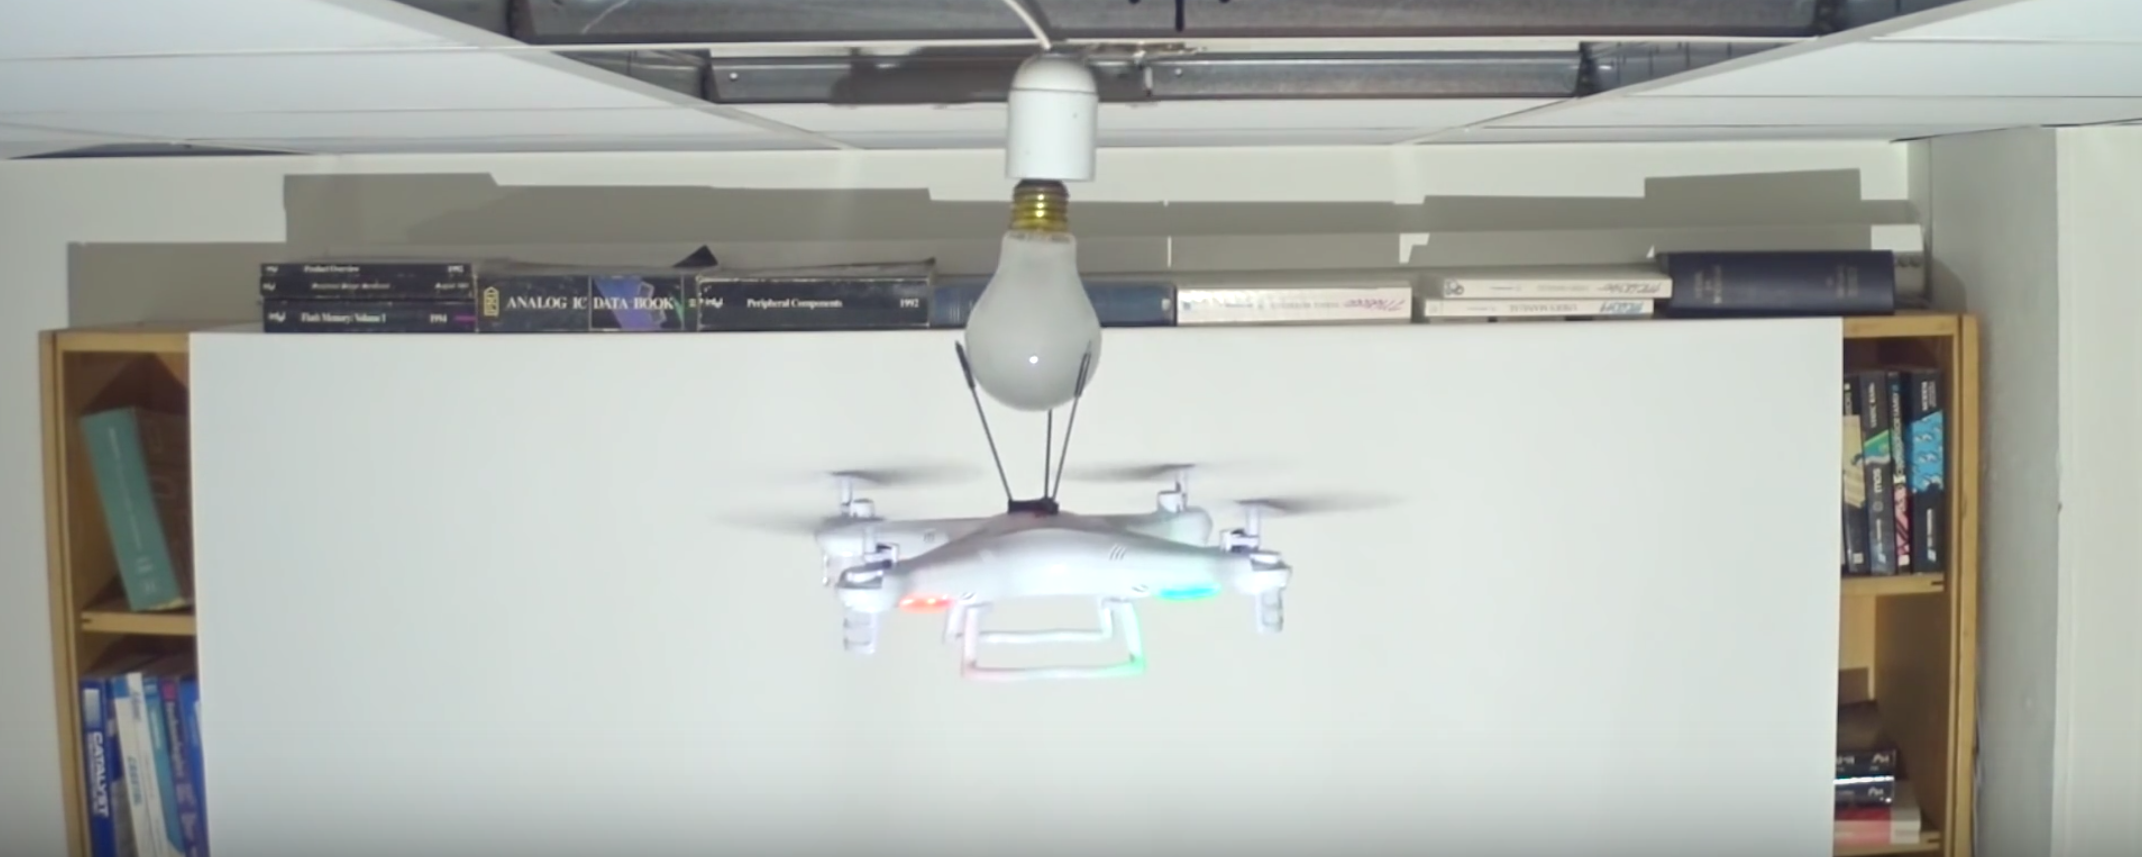 How Many Drones Does it Take to Change a Lightbulb?